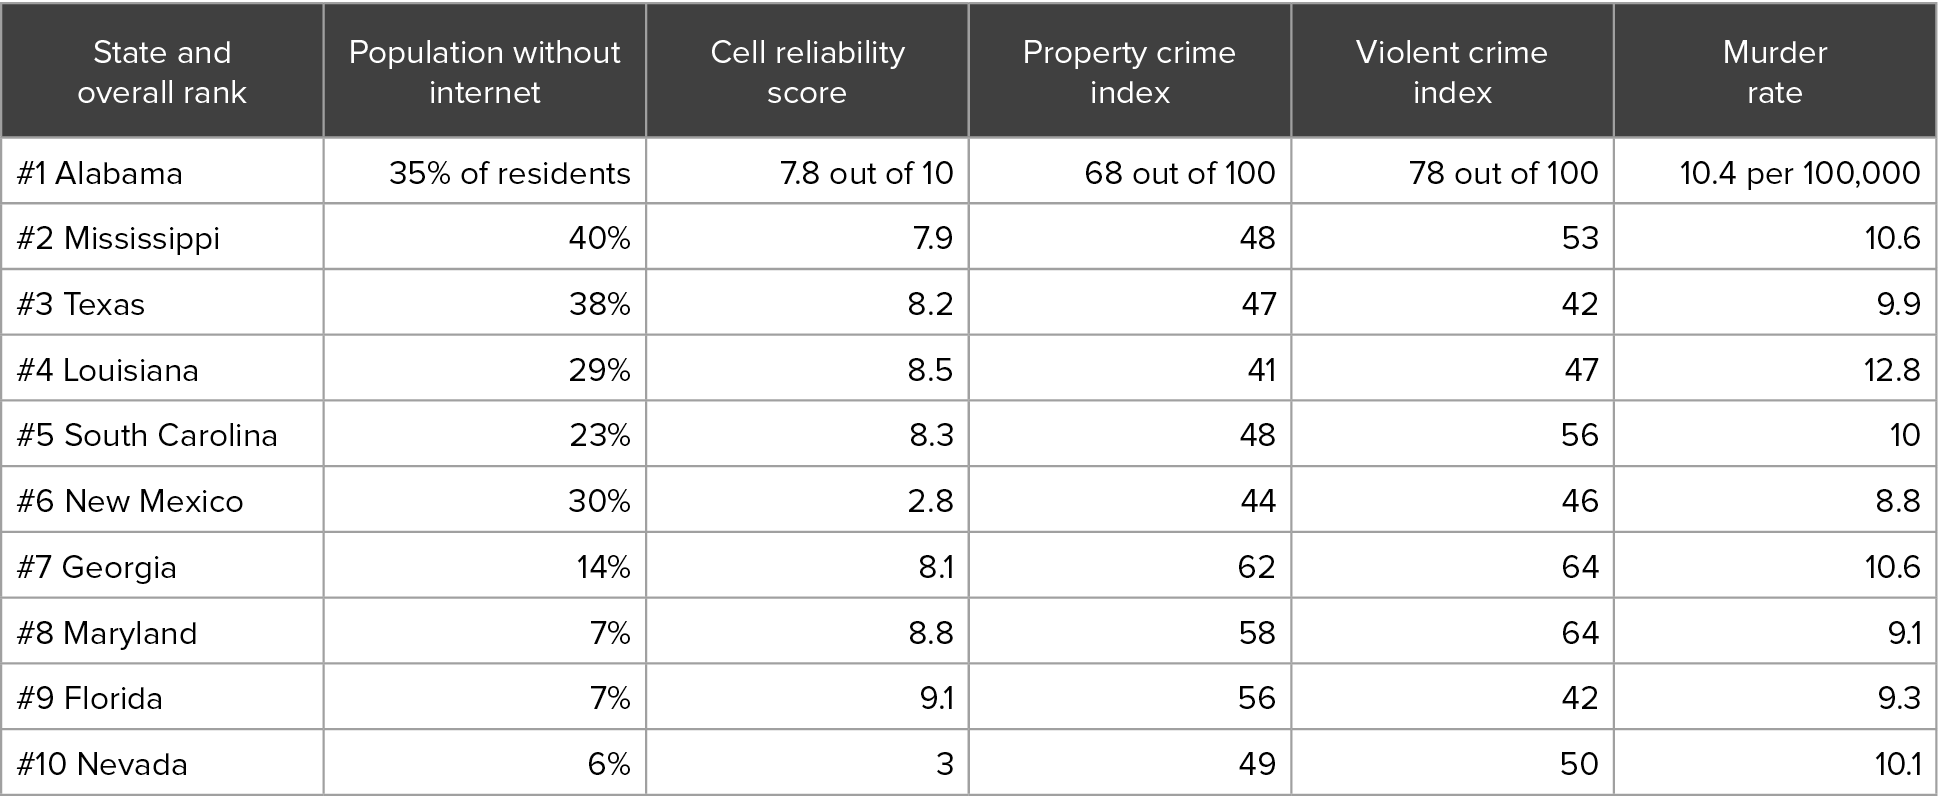 State Rankings of 10 Deadliest States Based on Crime, Internet Access, and Cell Reliability on USDish.com